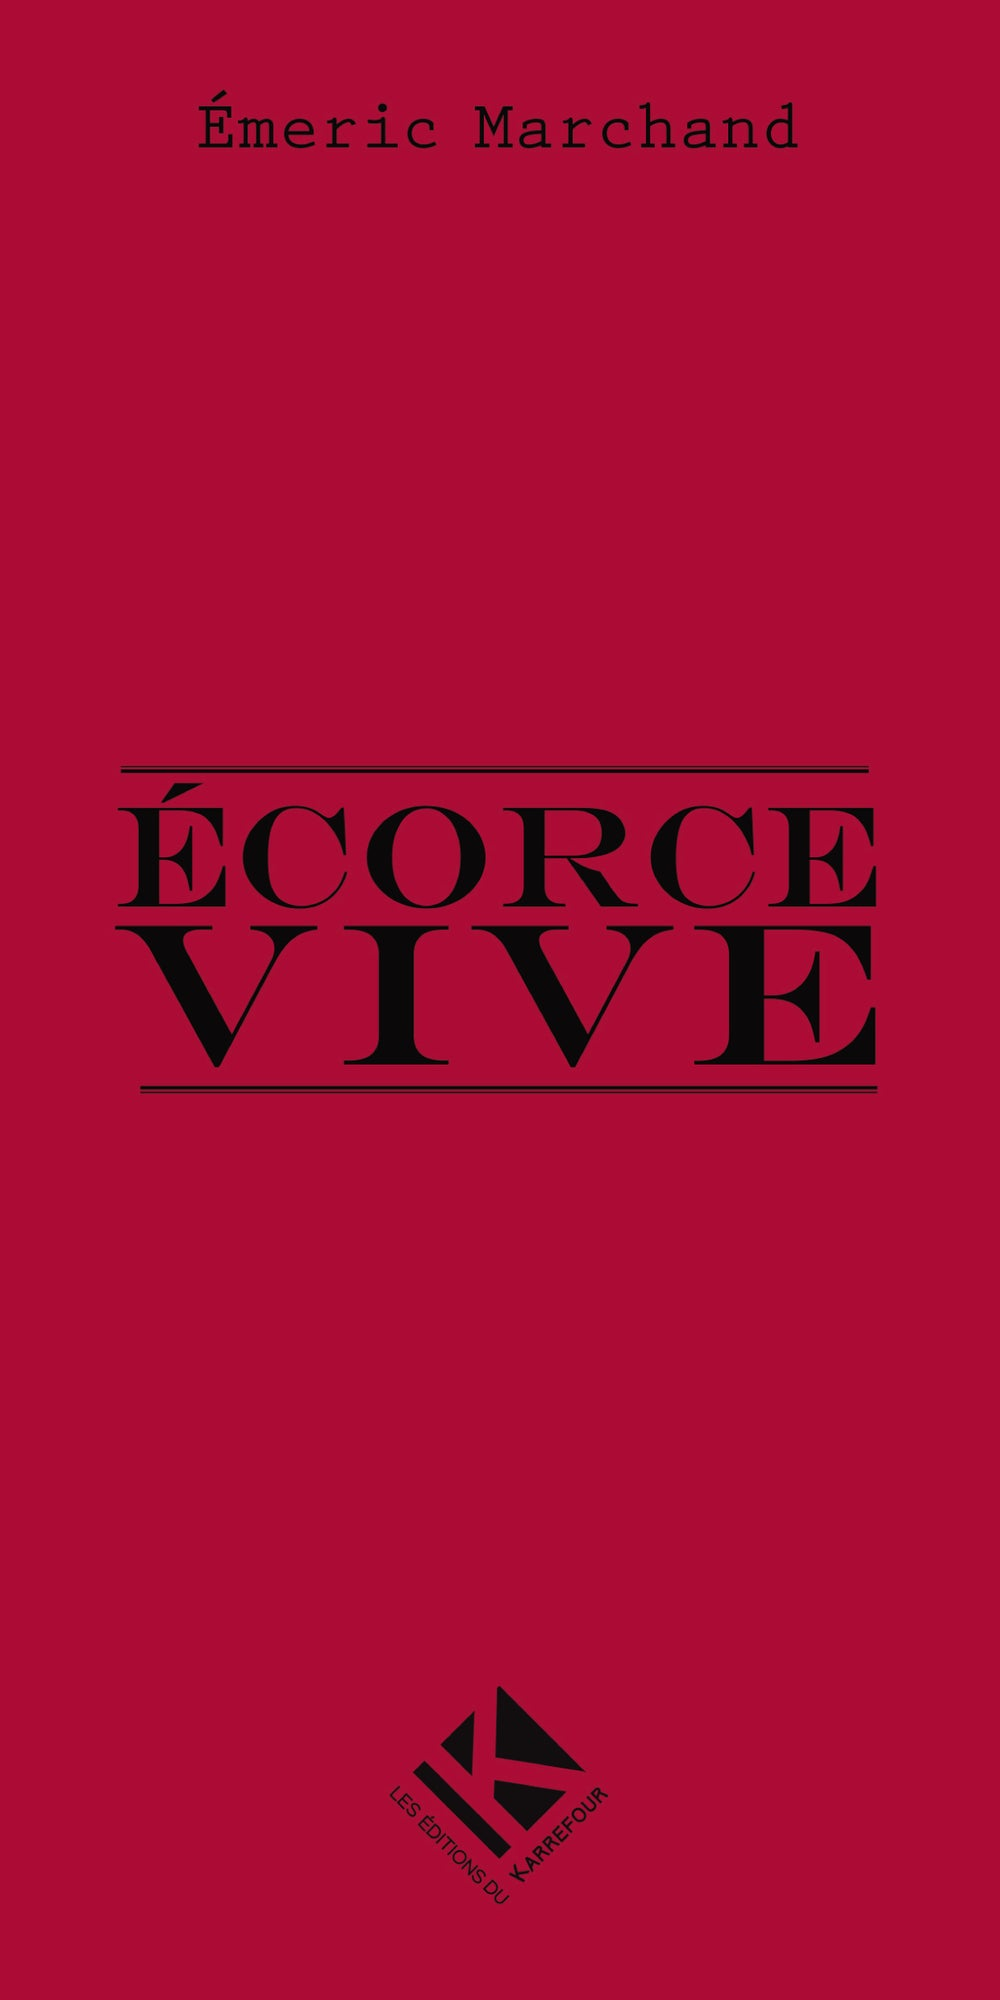 Image of Ecorce vive